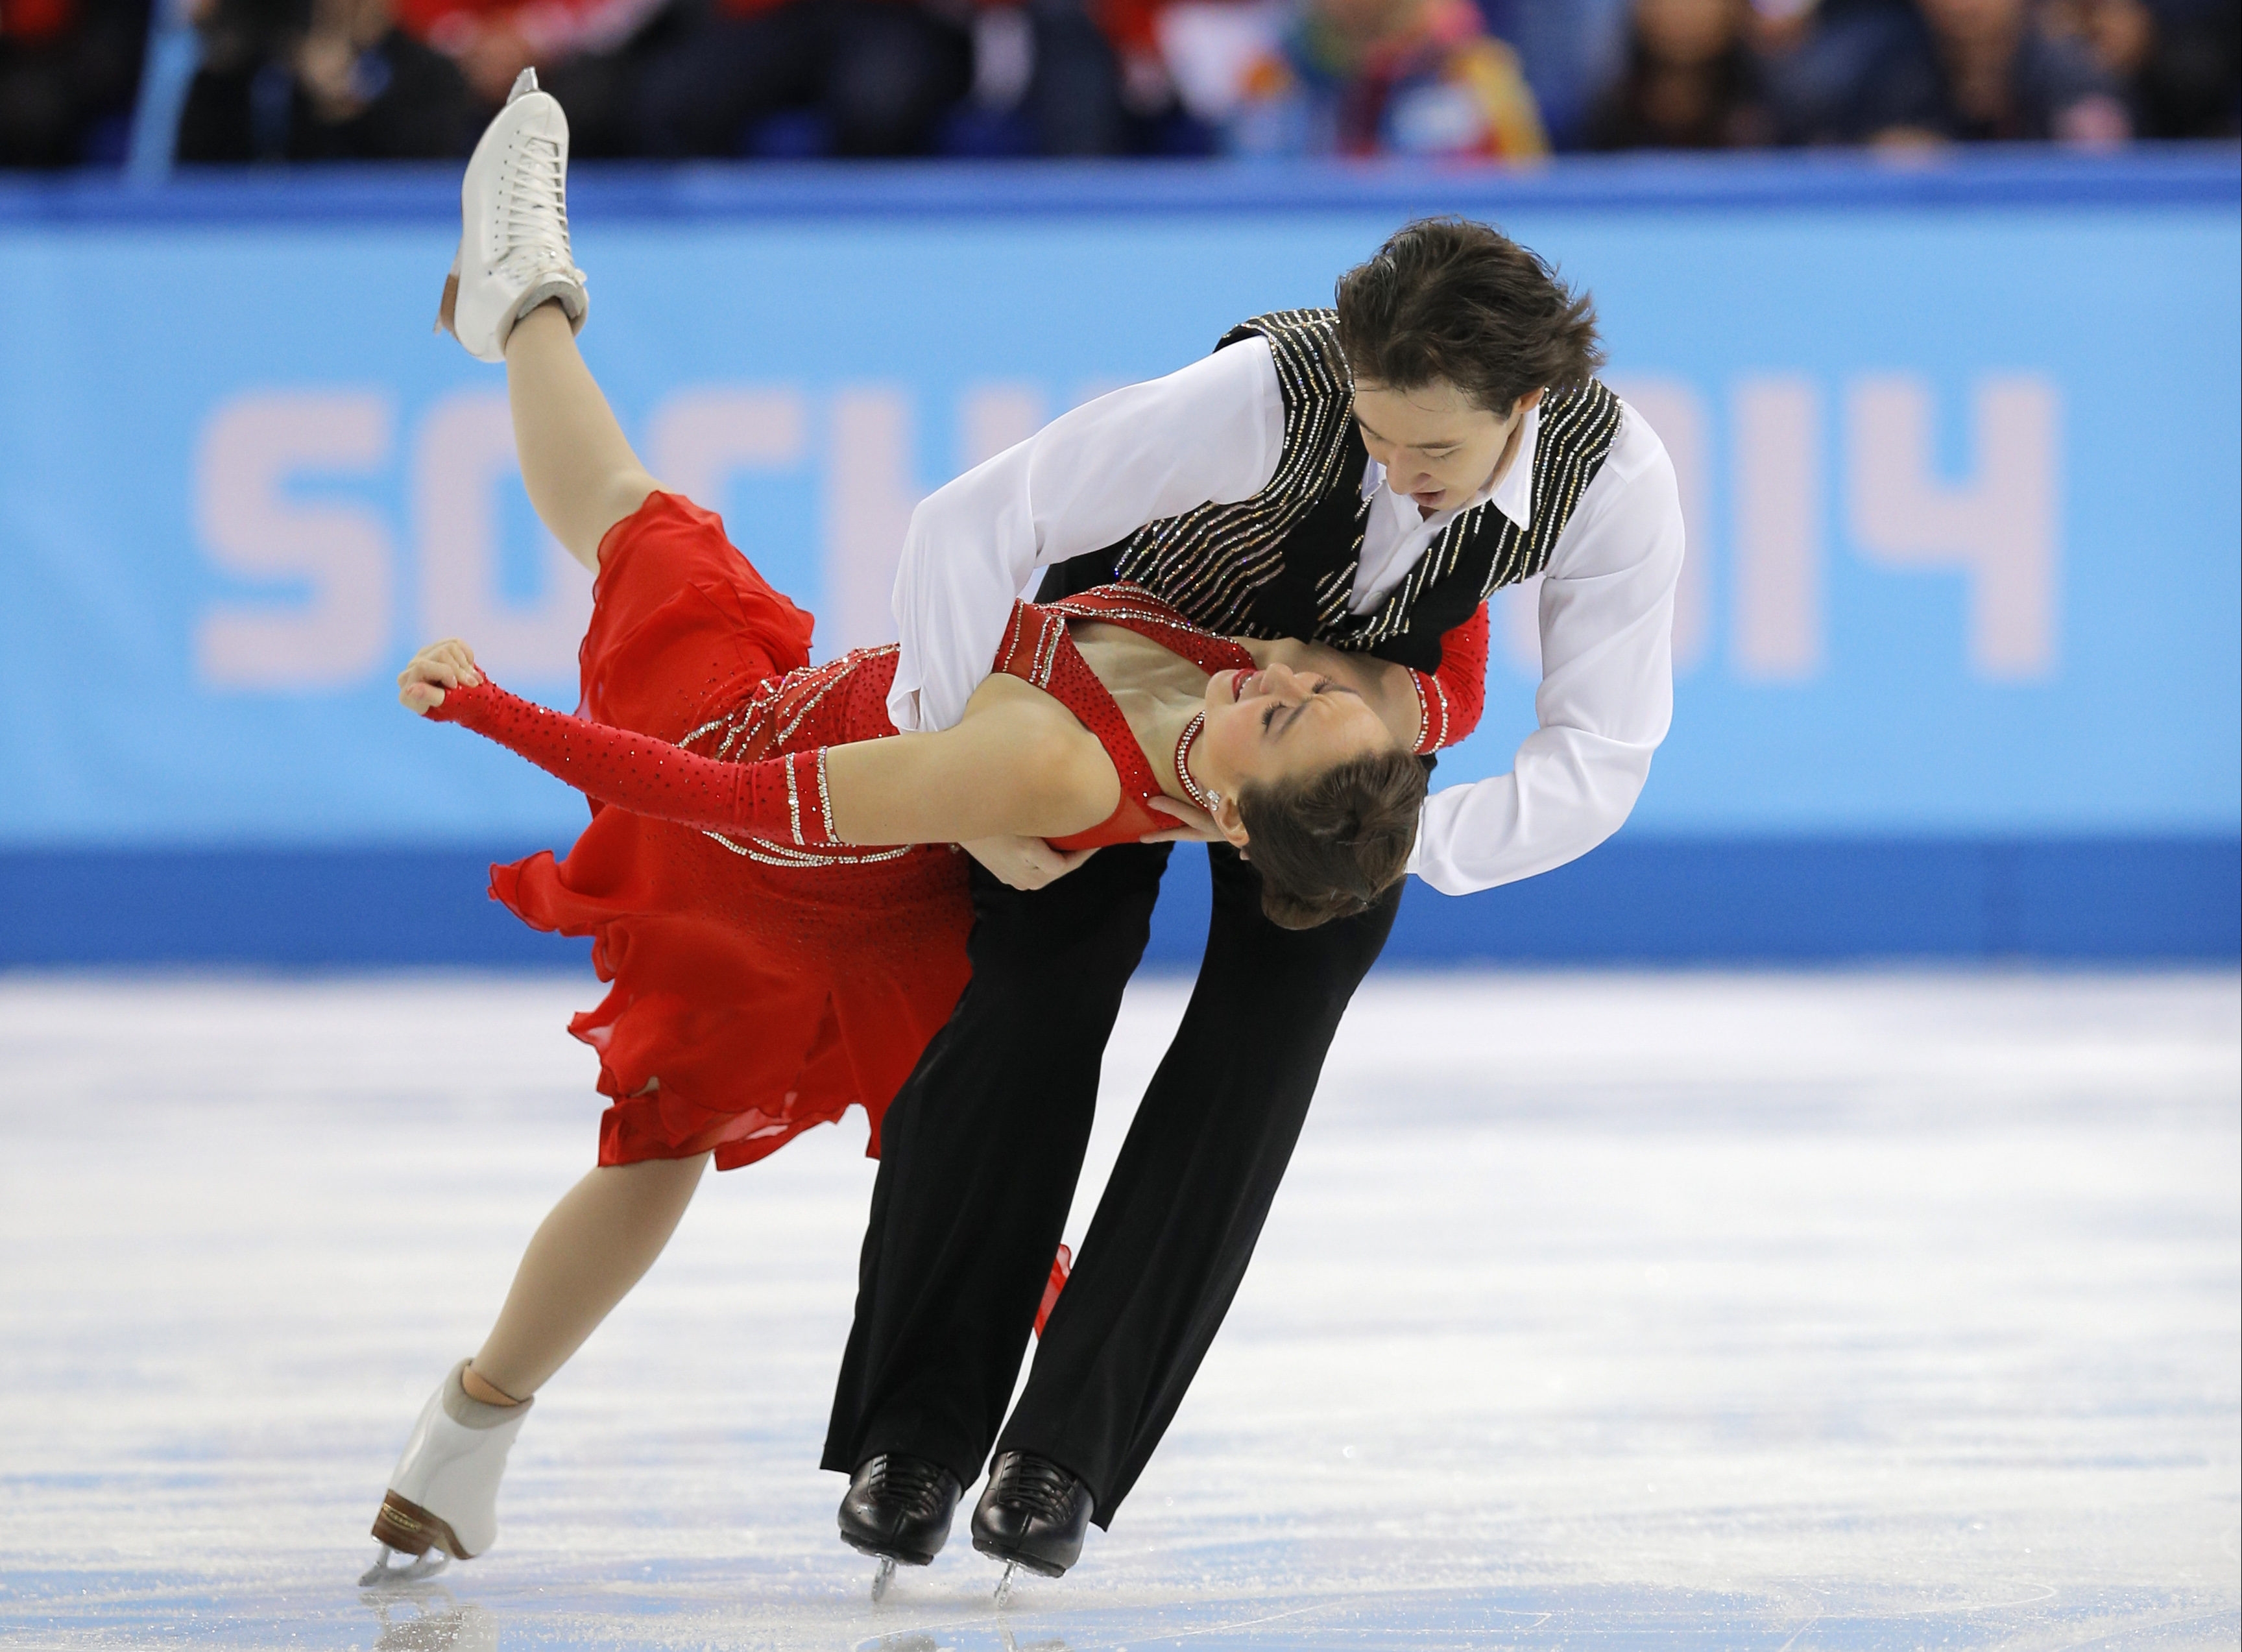 Cathy Reed and Chris Reed of Japan compete in the team ice dance short dance figure skating competition at the Iceberg Skating Palace during the 2014 Winter Olympics, Saturday, Feb. 8, 2014, in Sochi, Russia. (AP Photo/Vadim Ghirda)